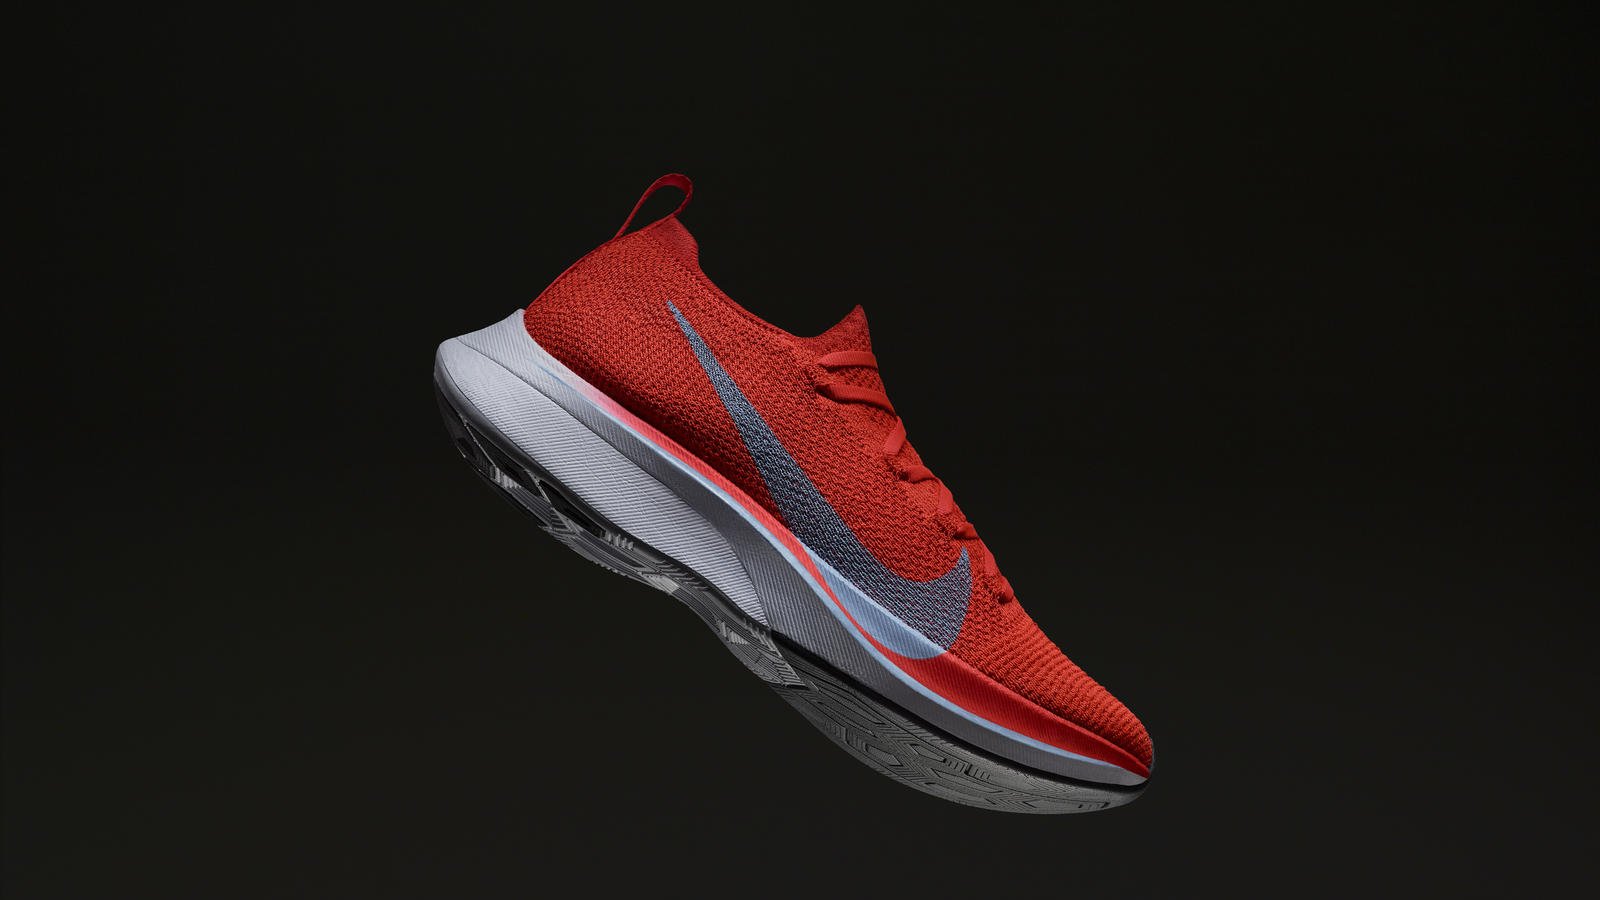 73941ac58548 How to Get the Nike Zoom Vaporfly 4% - Nike News